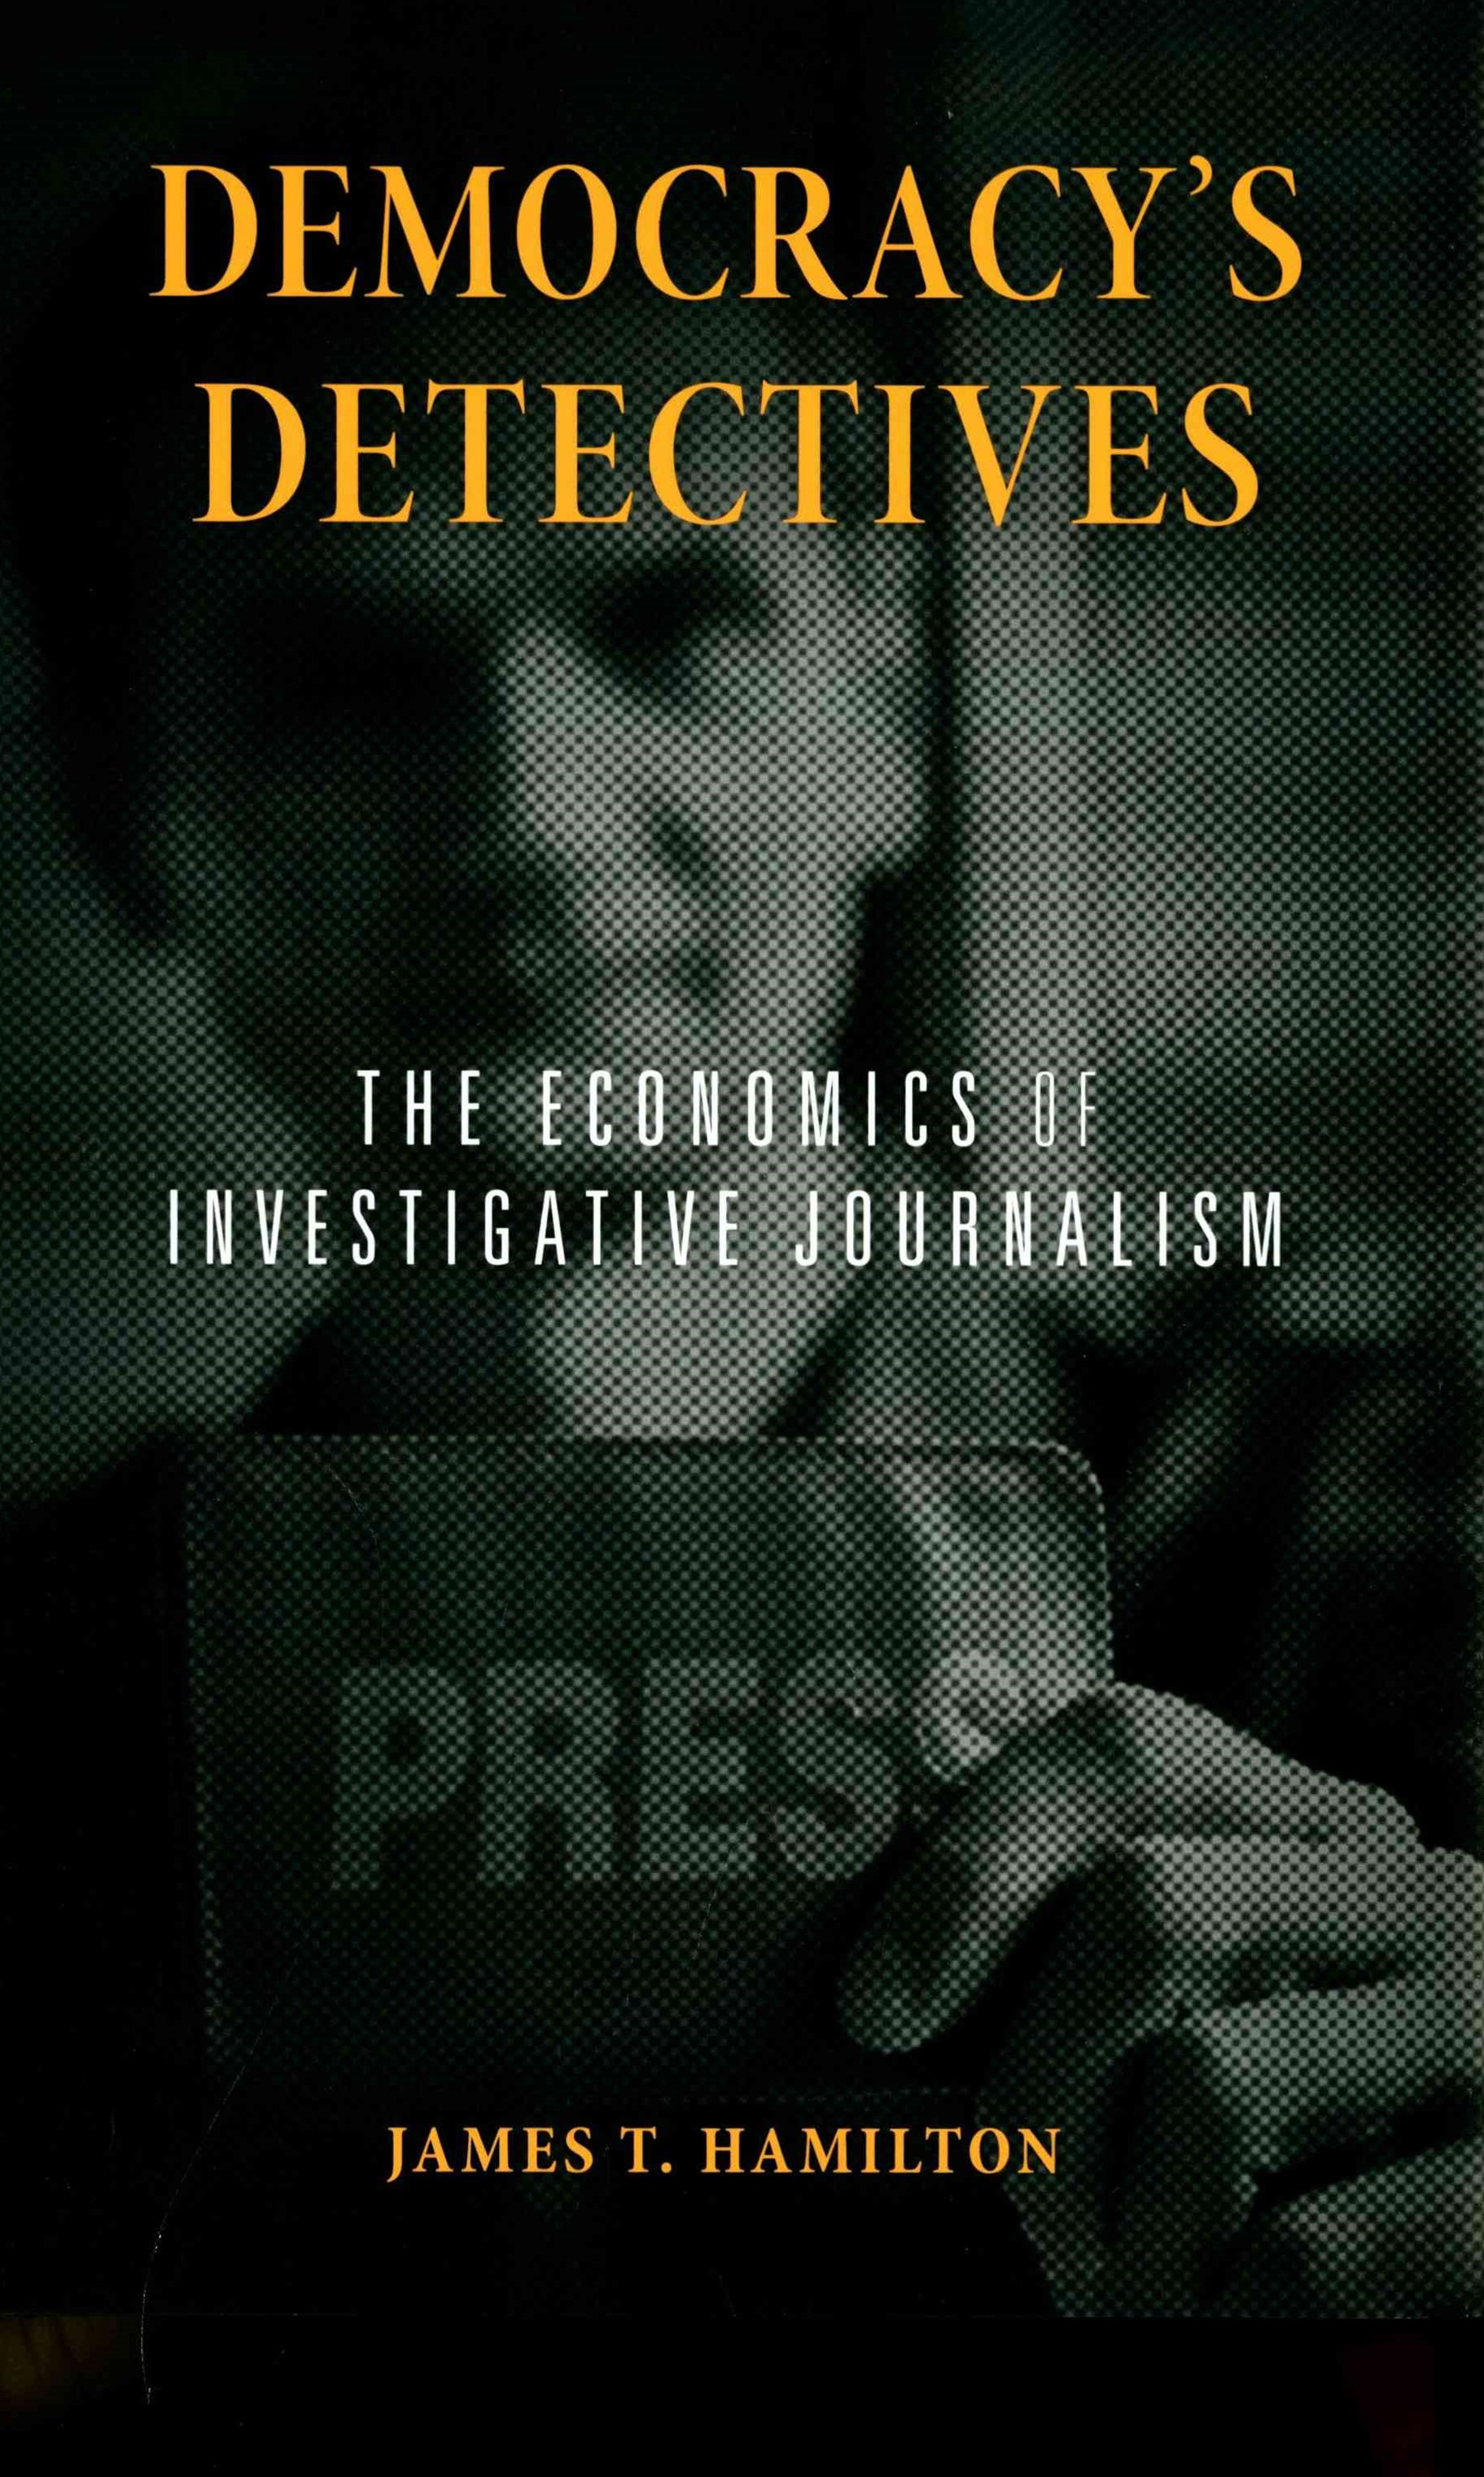 Democracy`s Detectives - The Economics of Investigative Journalism